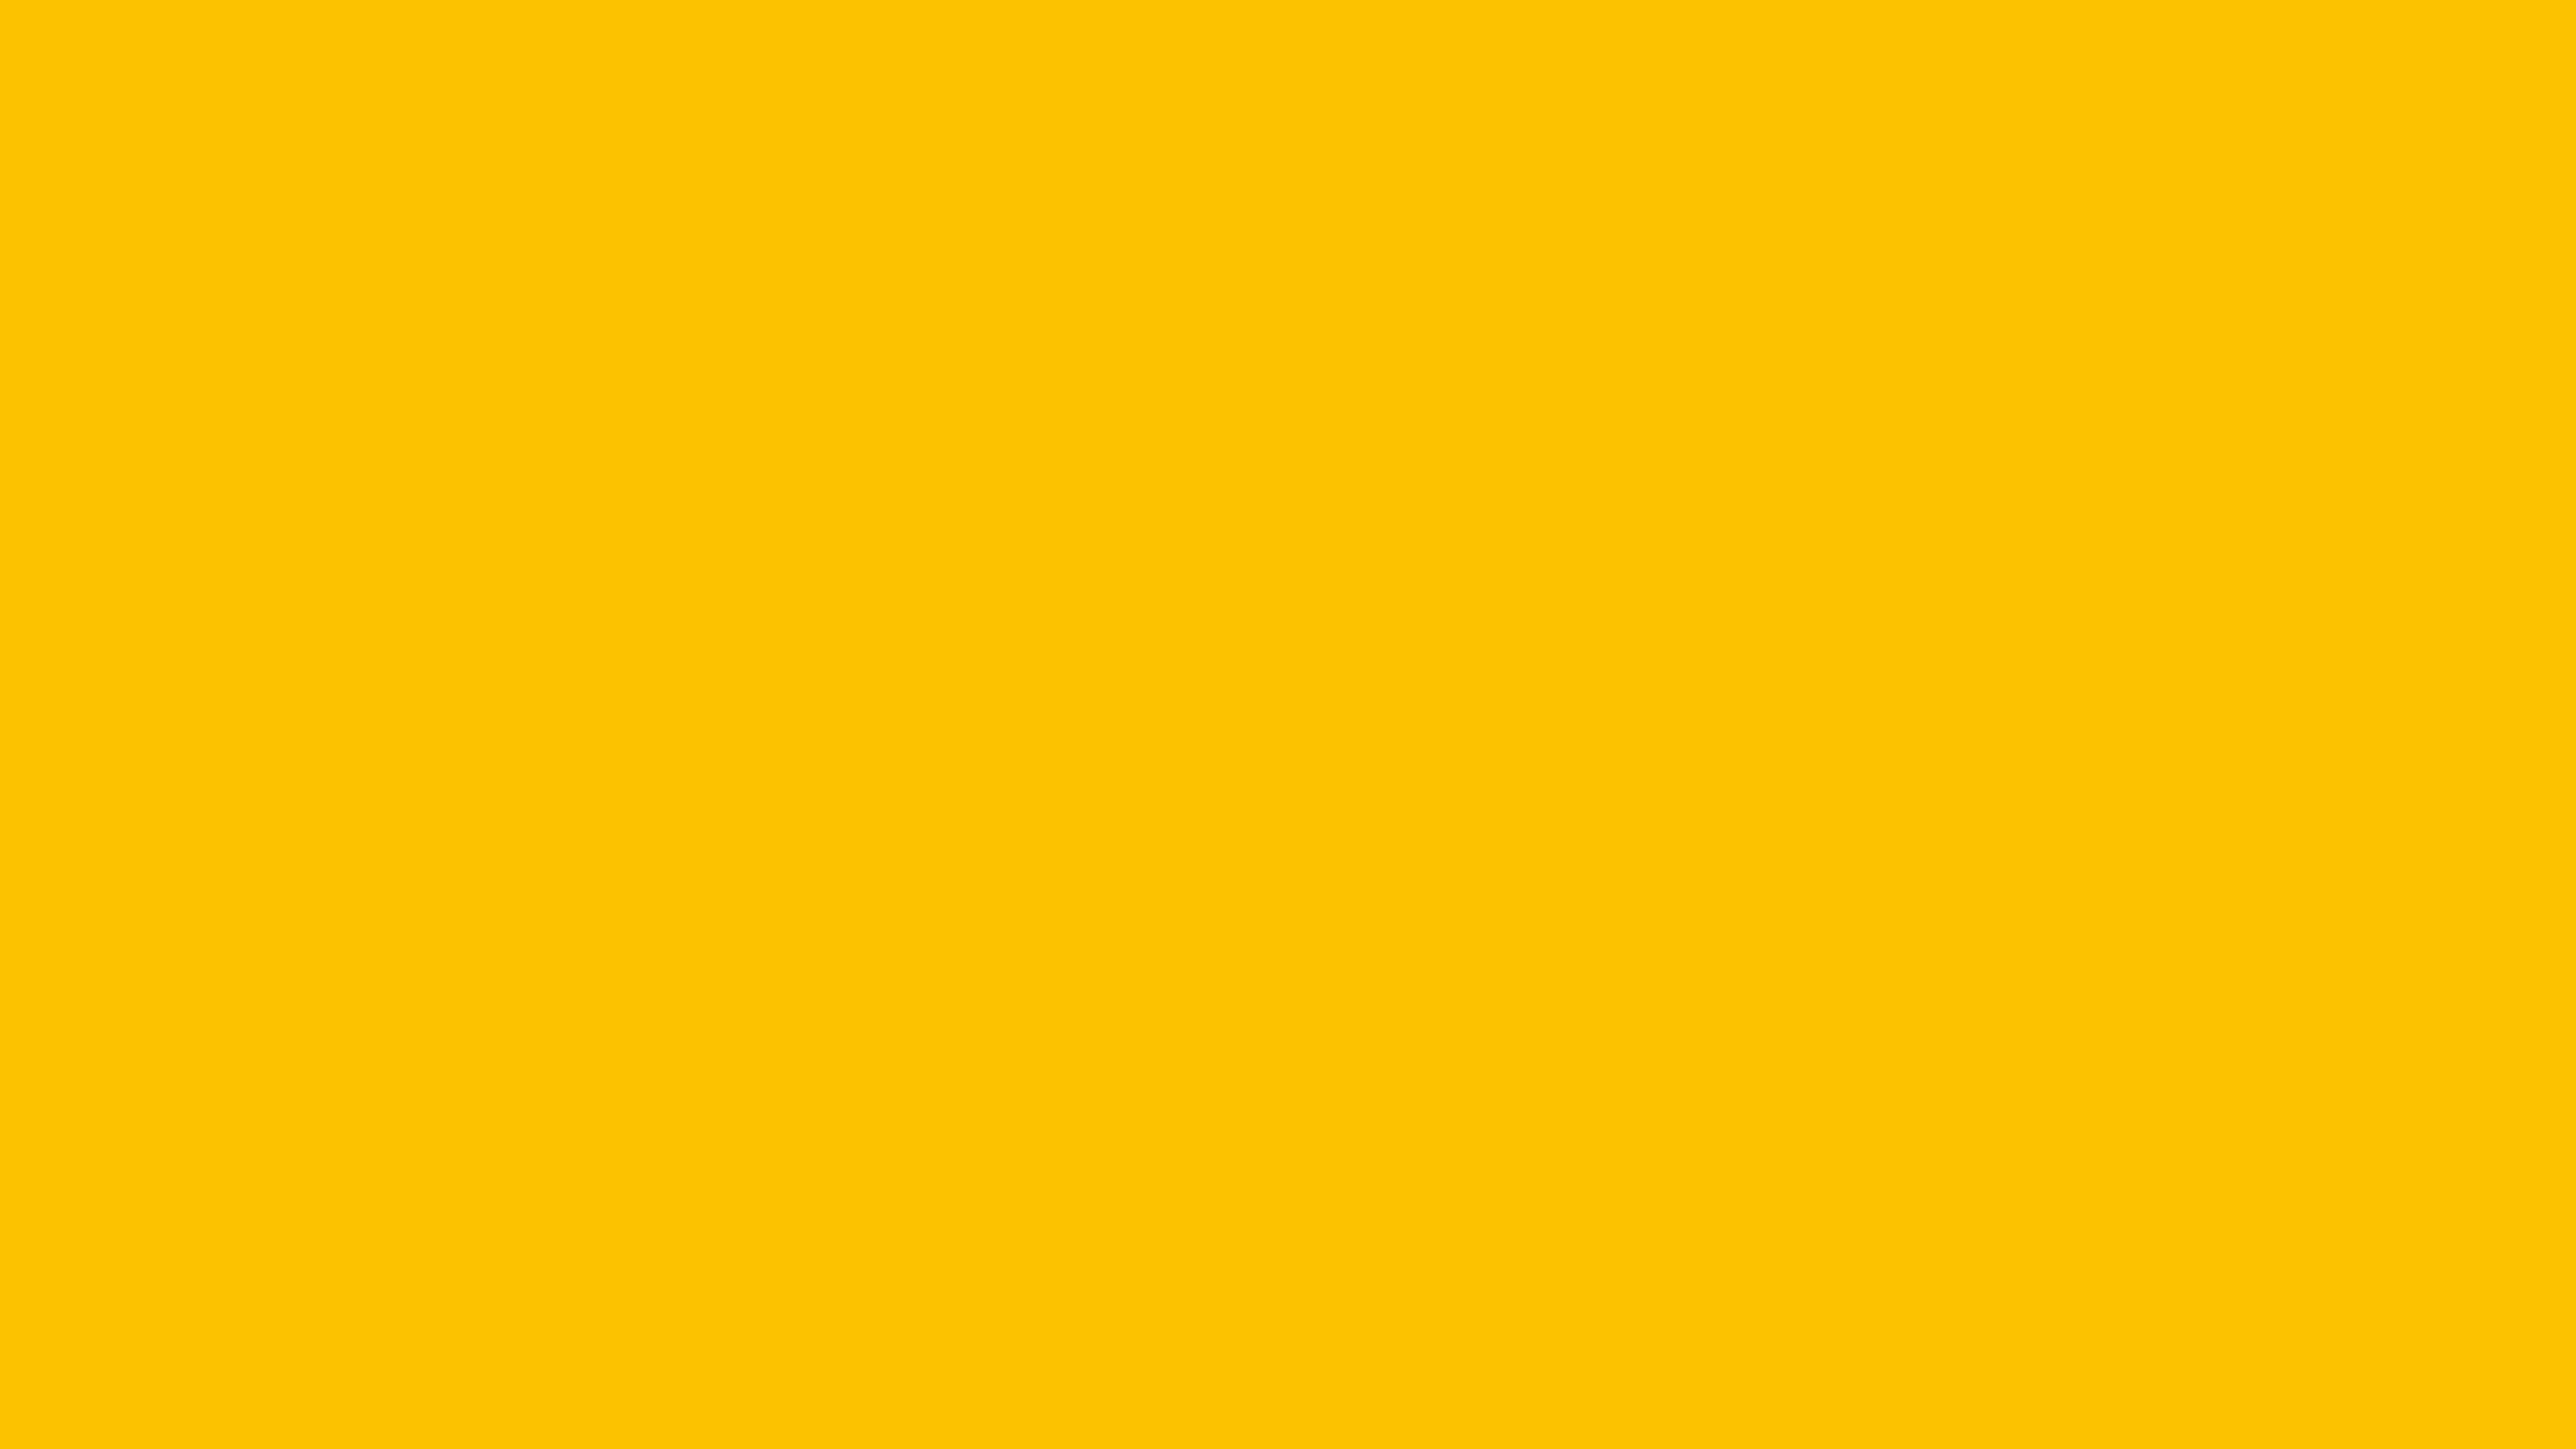 4096x2304 Golden Poppy Solid Color Background